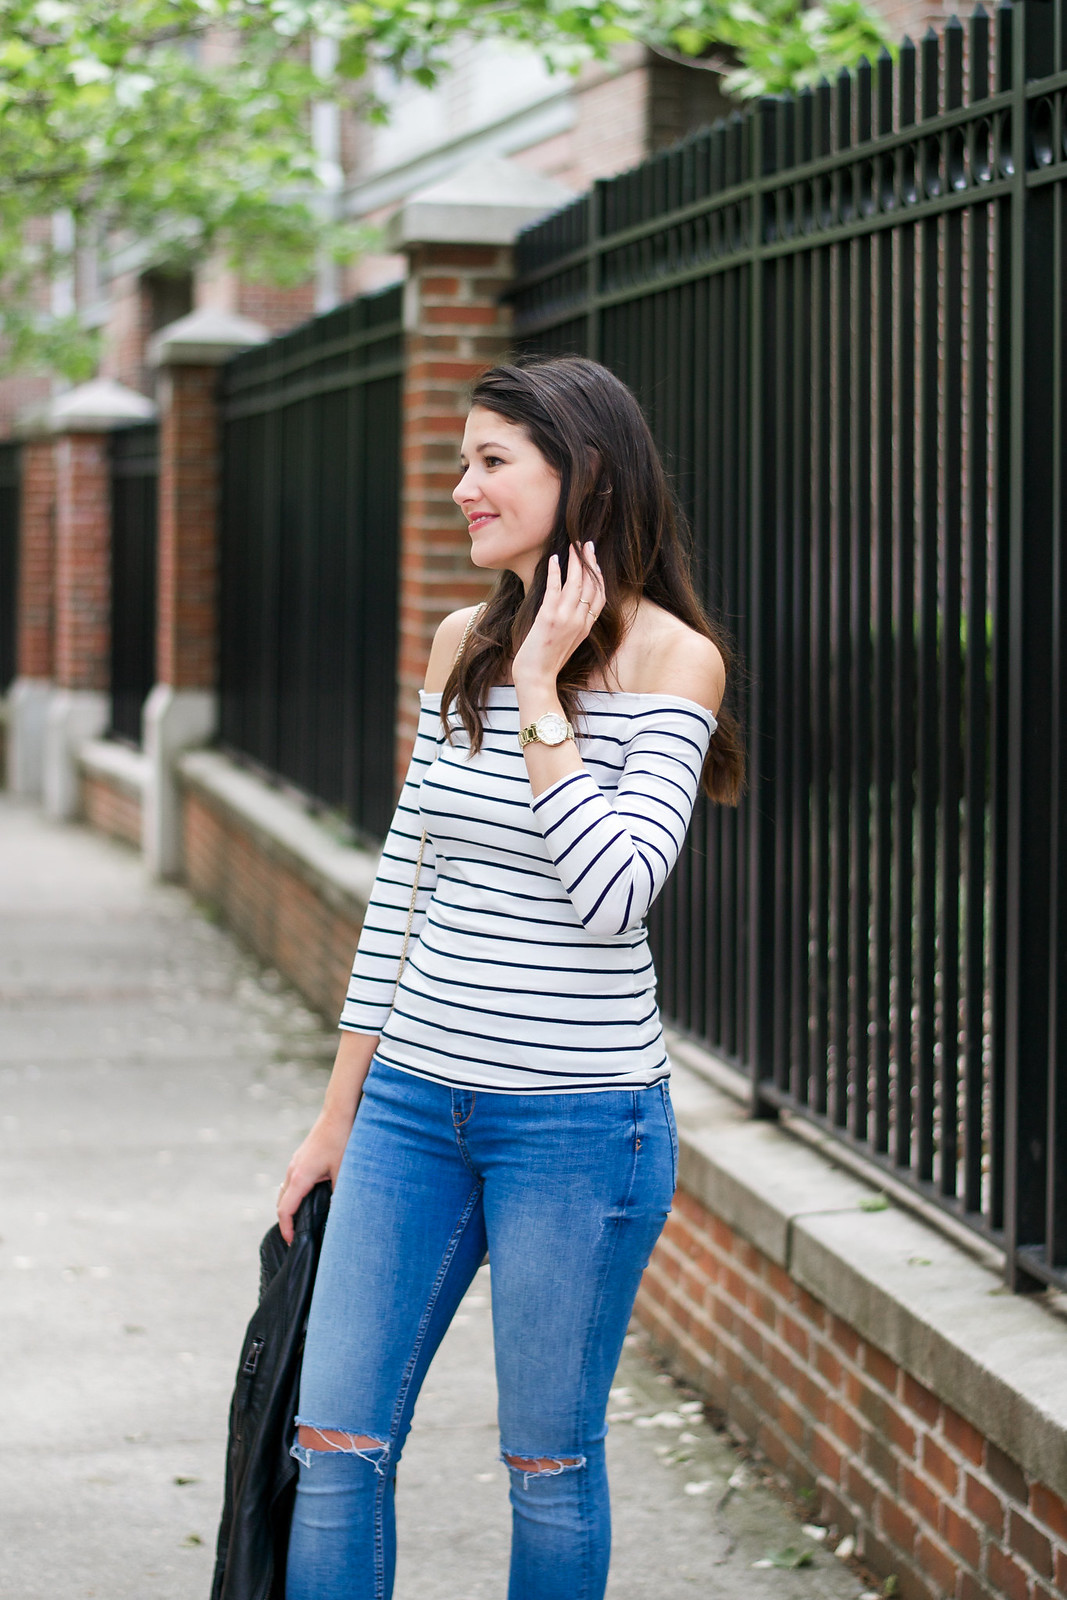 Off The Shoulder Top and Ripped Jeans Style